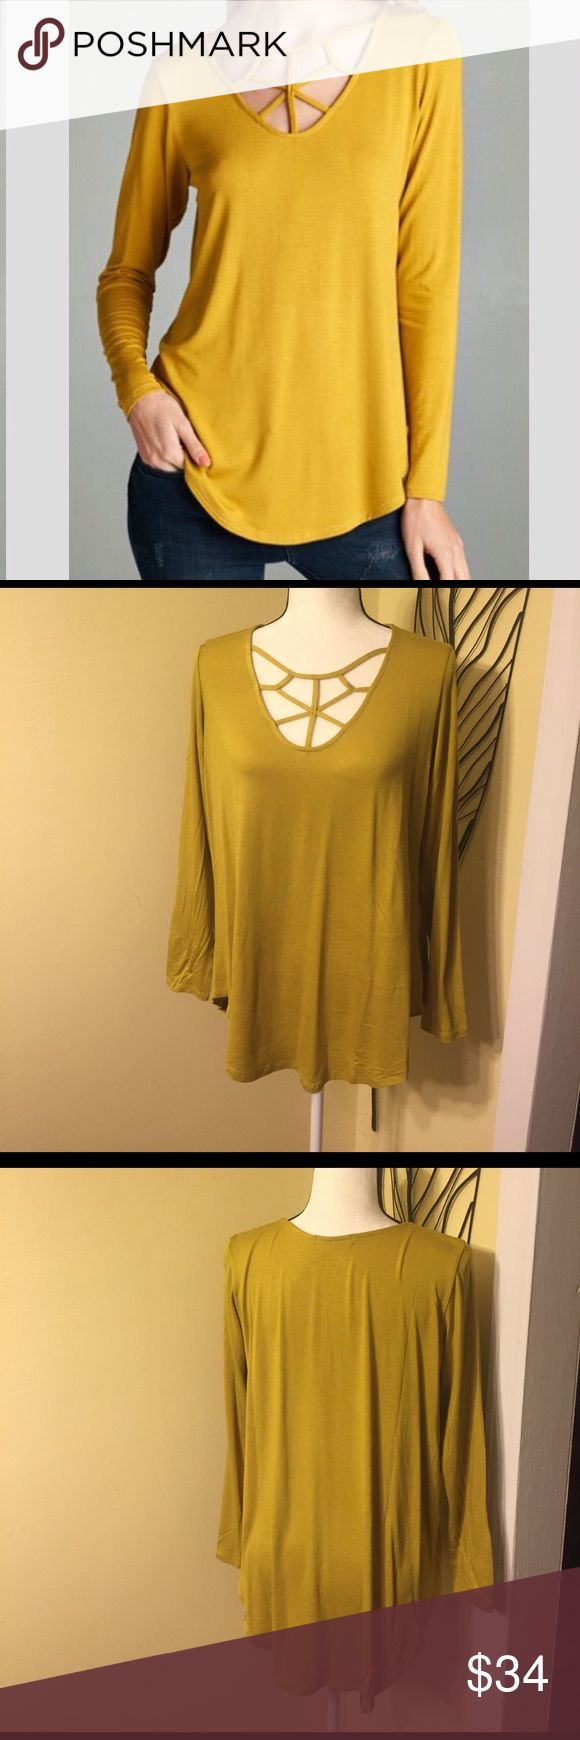 🆕 GOLD STRAPPY TOP 🆕 Brand New!!! Gold tops with strappy front detail. Made of 96% rayon and 4% spandex. Has good stretch. Cherish Tops Tunics